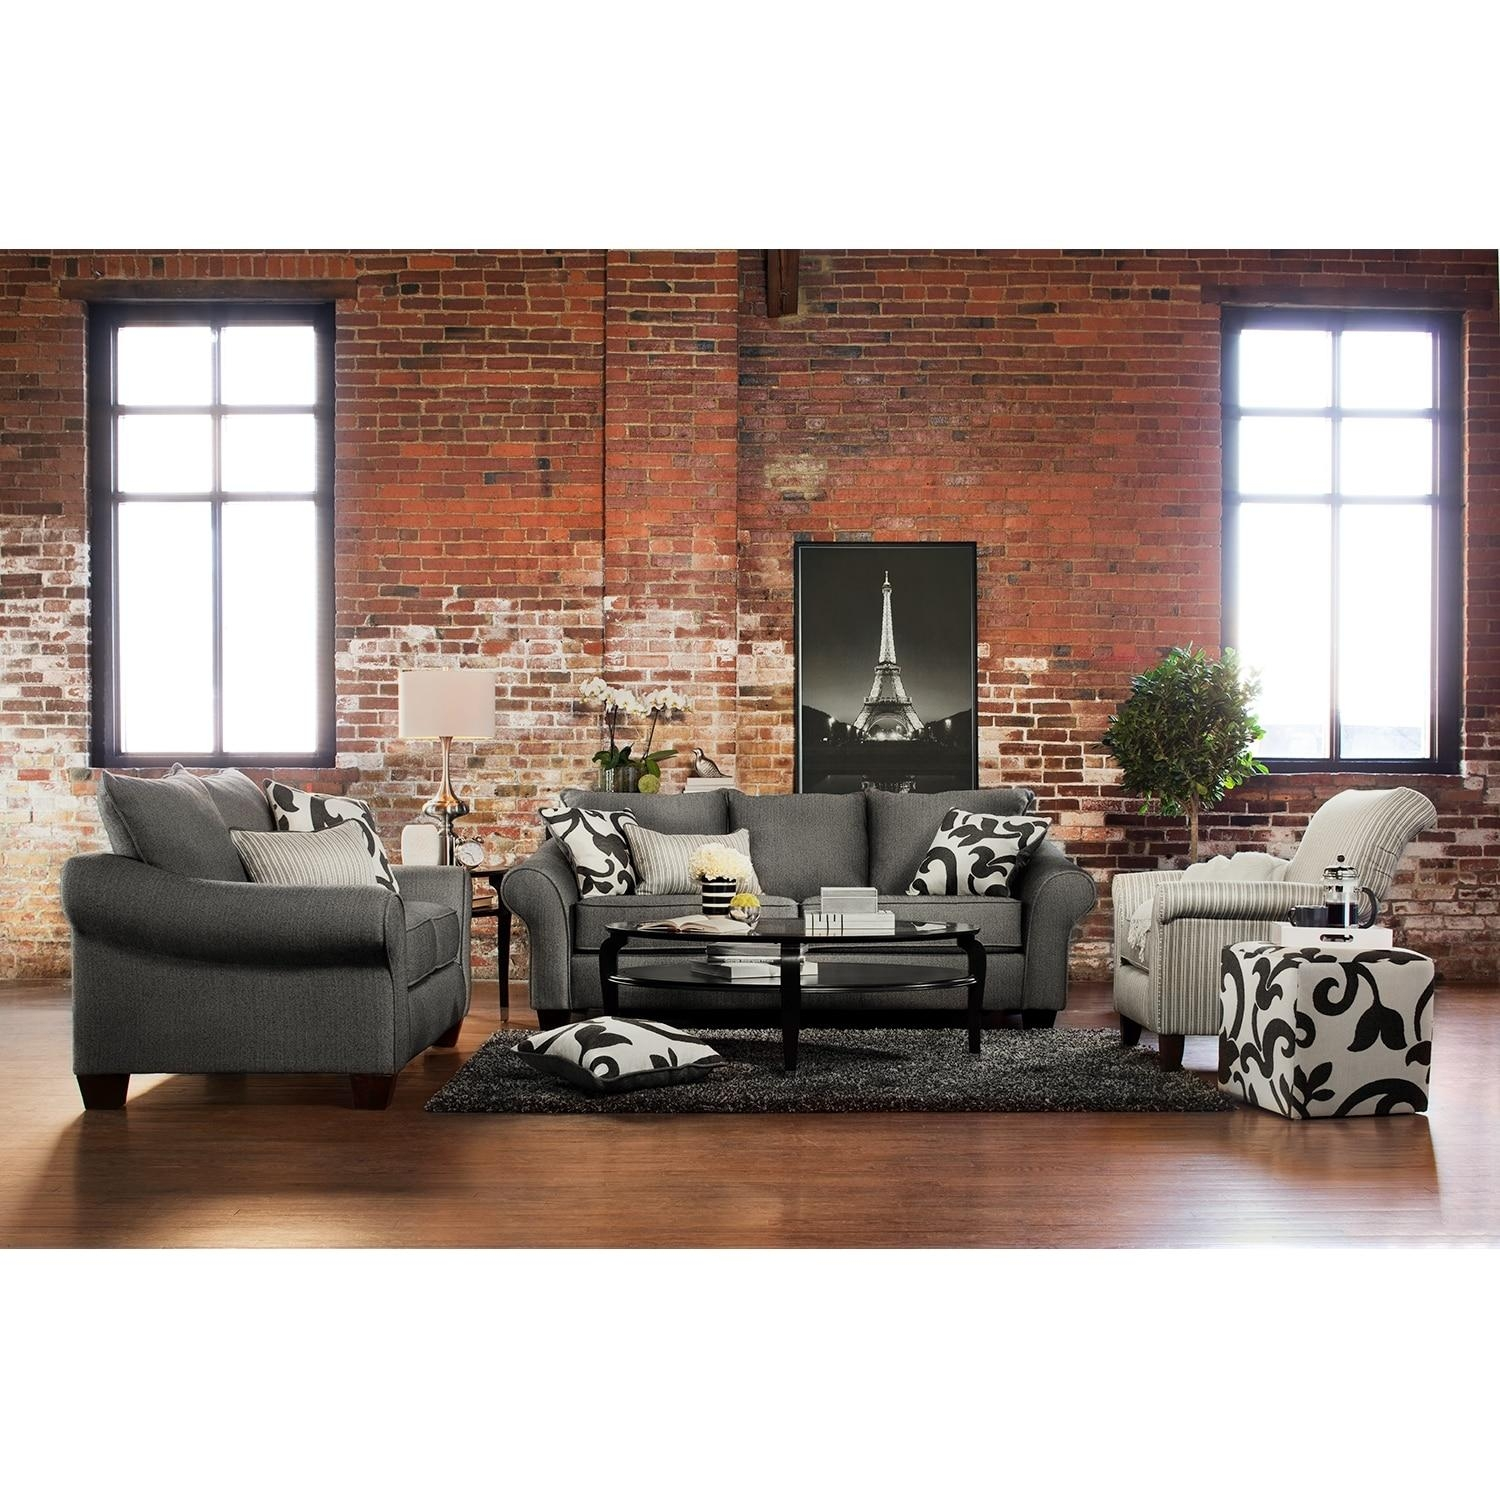 Colette Sofa, Loveseat And Accent Chair Set – Gray | American Within Sofa Loveseat And Chairs (Image 9 of 20)